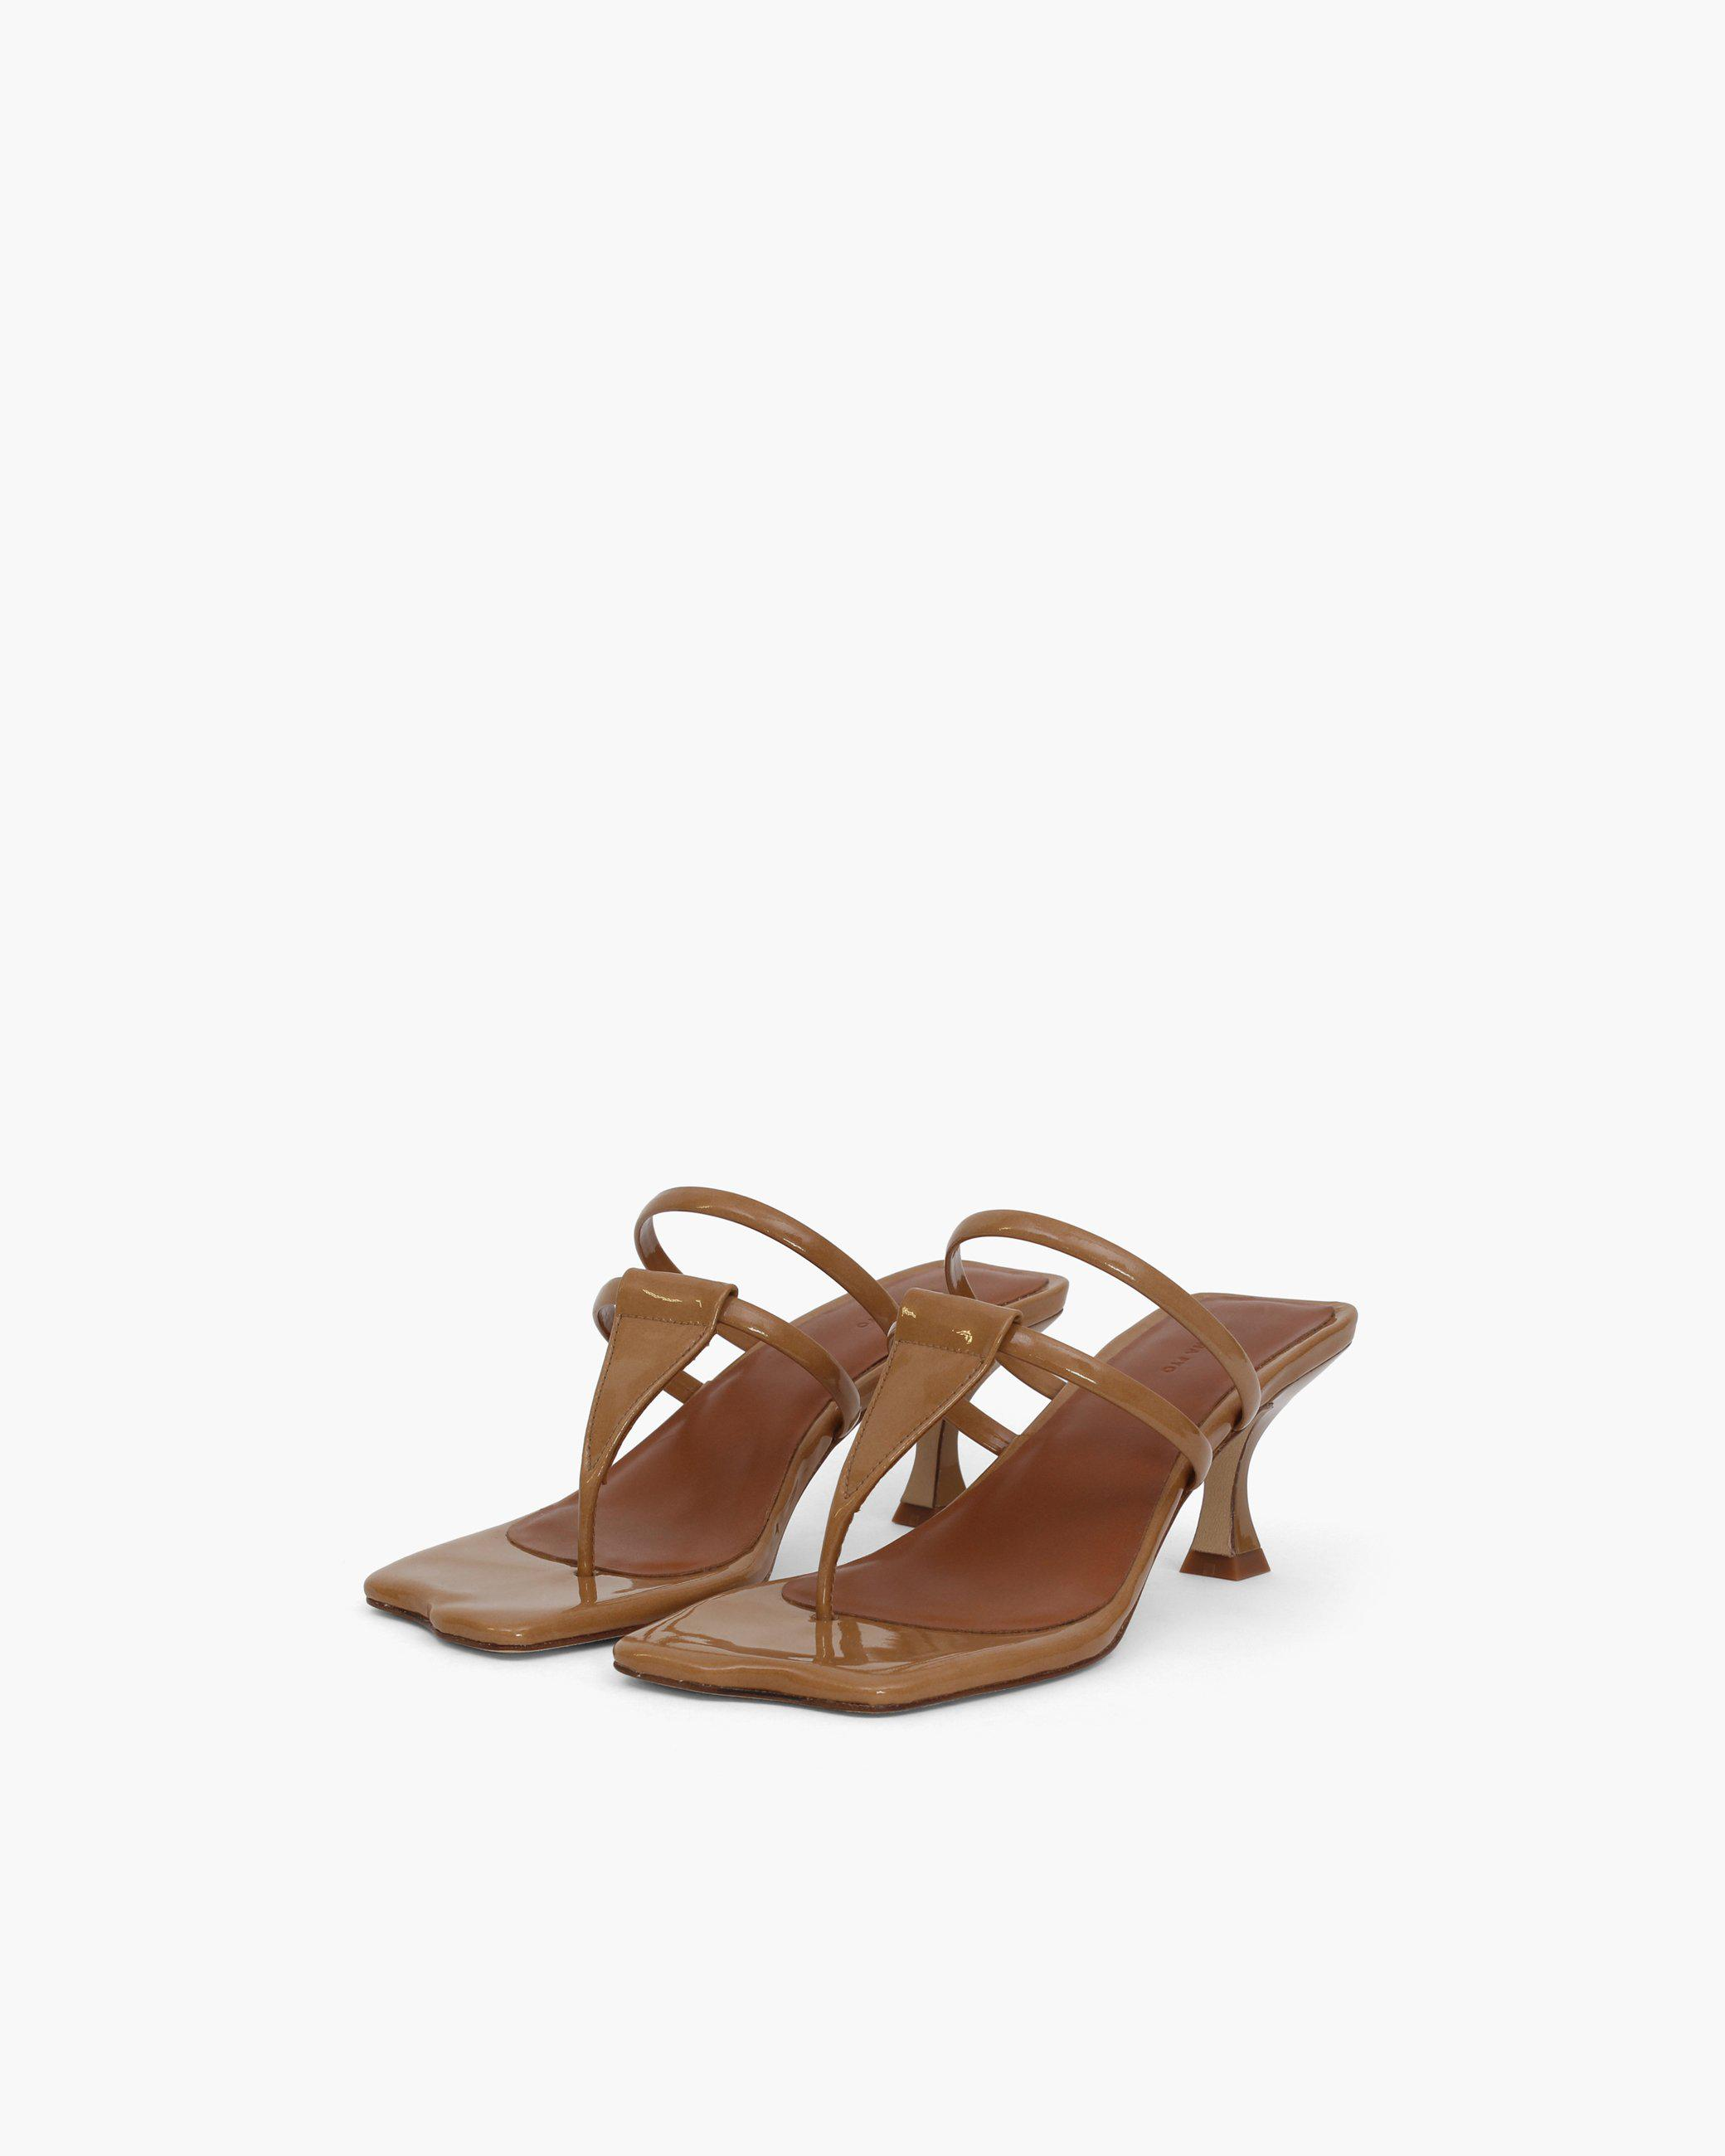 Allie Sandals Patent Leather Brown 1